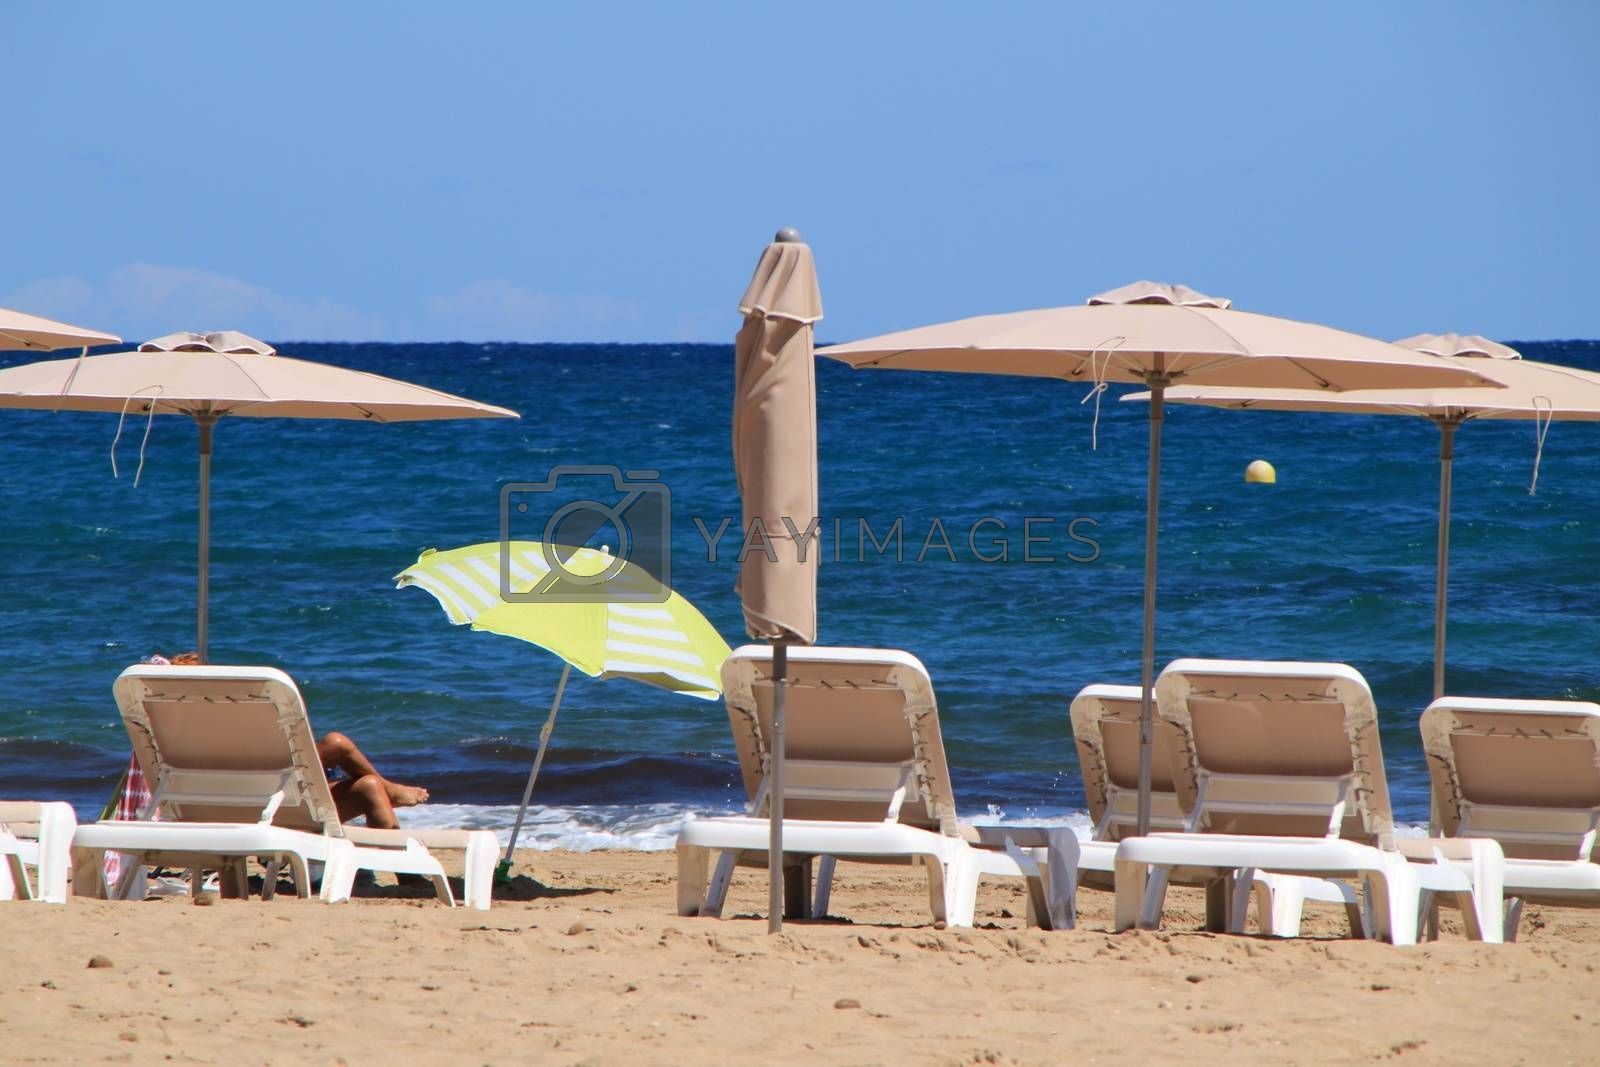 Woman sunbathing on a beach in Alicante and surrounded by sunbeds and umbrellas